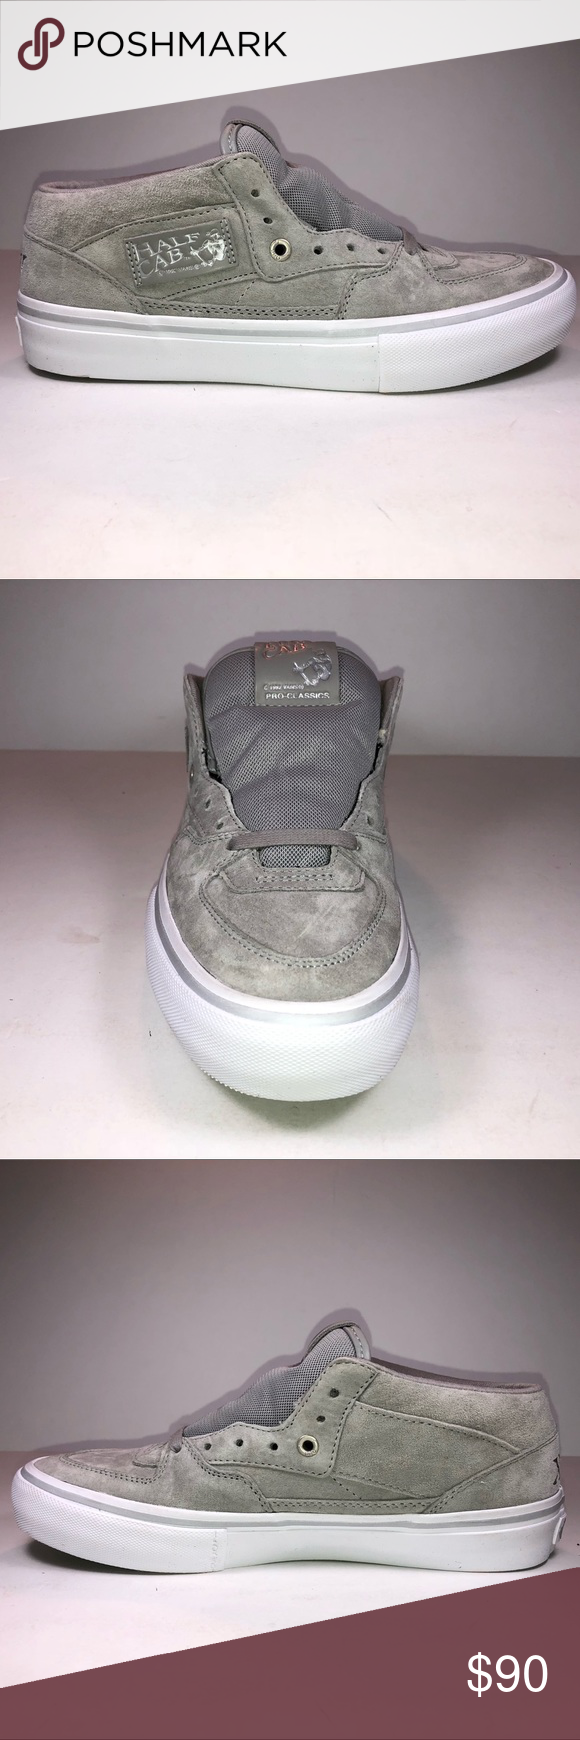 a01fd620532 Vans Half Cab Pro 25th Anniversary Silver Skateboarding Sneakers Steve  Caballero Mens Size VN0A38CPPHD Vans Shoes Sneakers